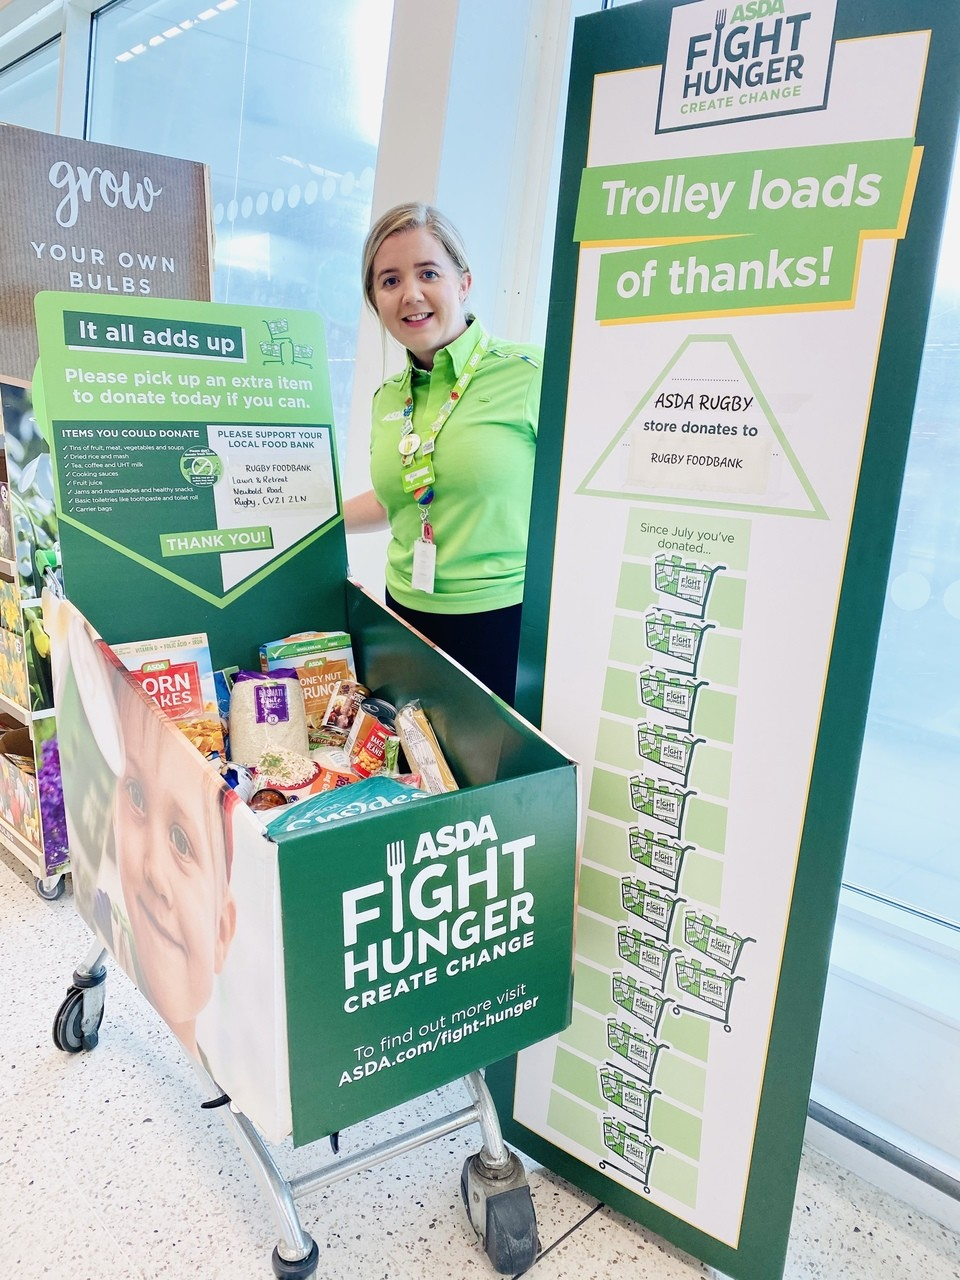 A phenomenal response to our Fight Hunger Create Change foodbank appeal | Asda Rugby